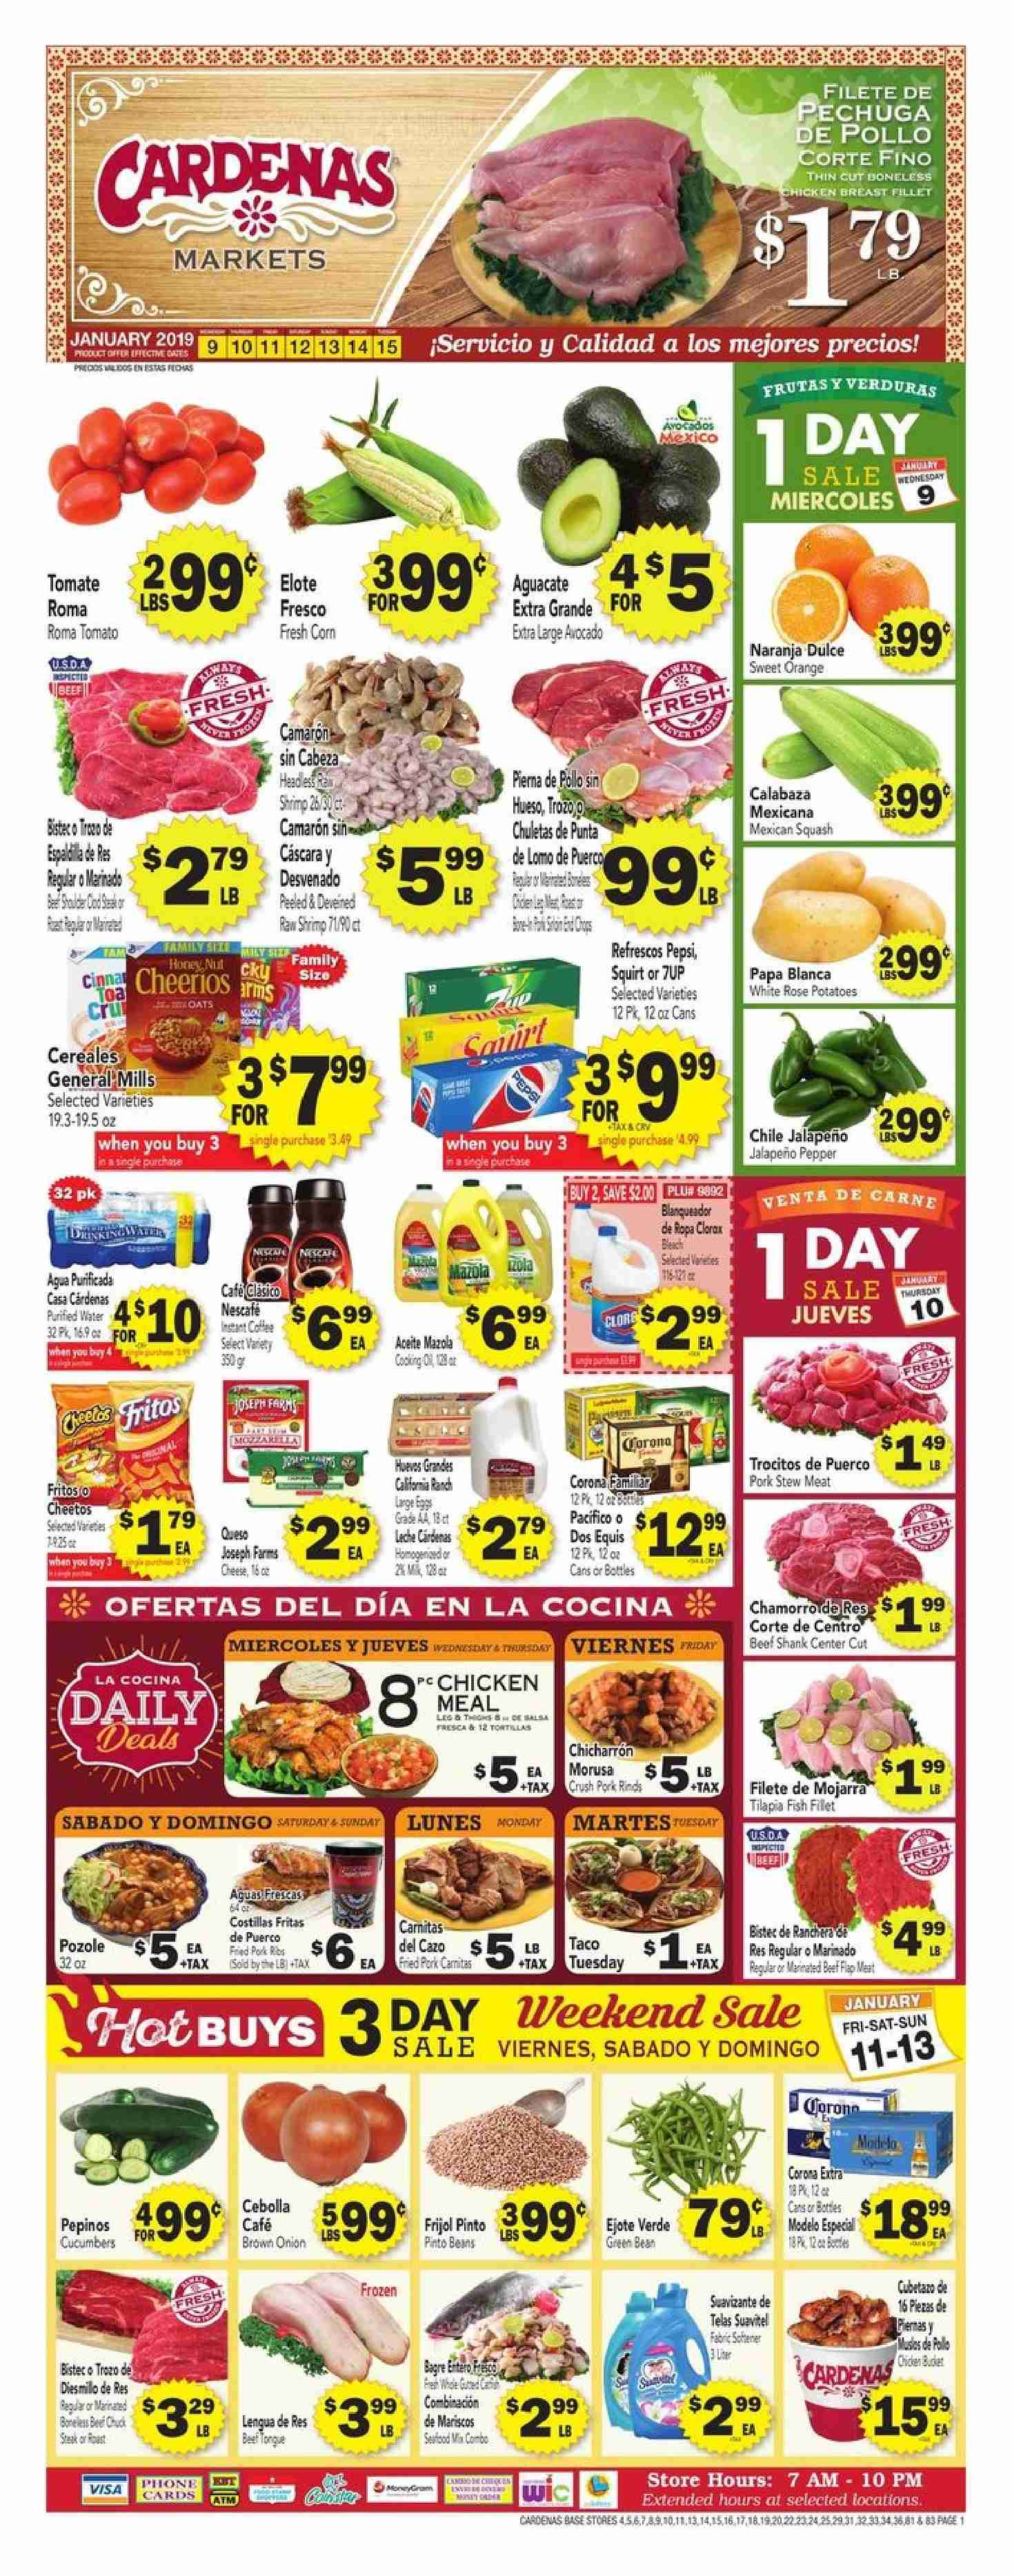 Cardenas Flyer - 01.09.2019 - 01.15.2019 - Sales products - beans, beef meat, corn, shrimp, pinto beans, pork meat, potatoes, cheerios, chicken, pepsi, onion, water. Page 1.